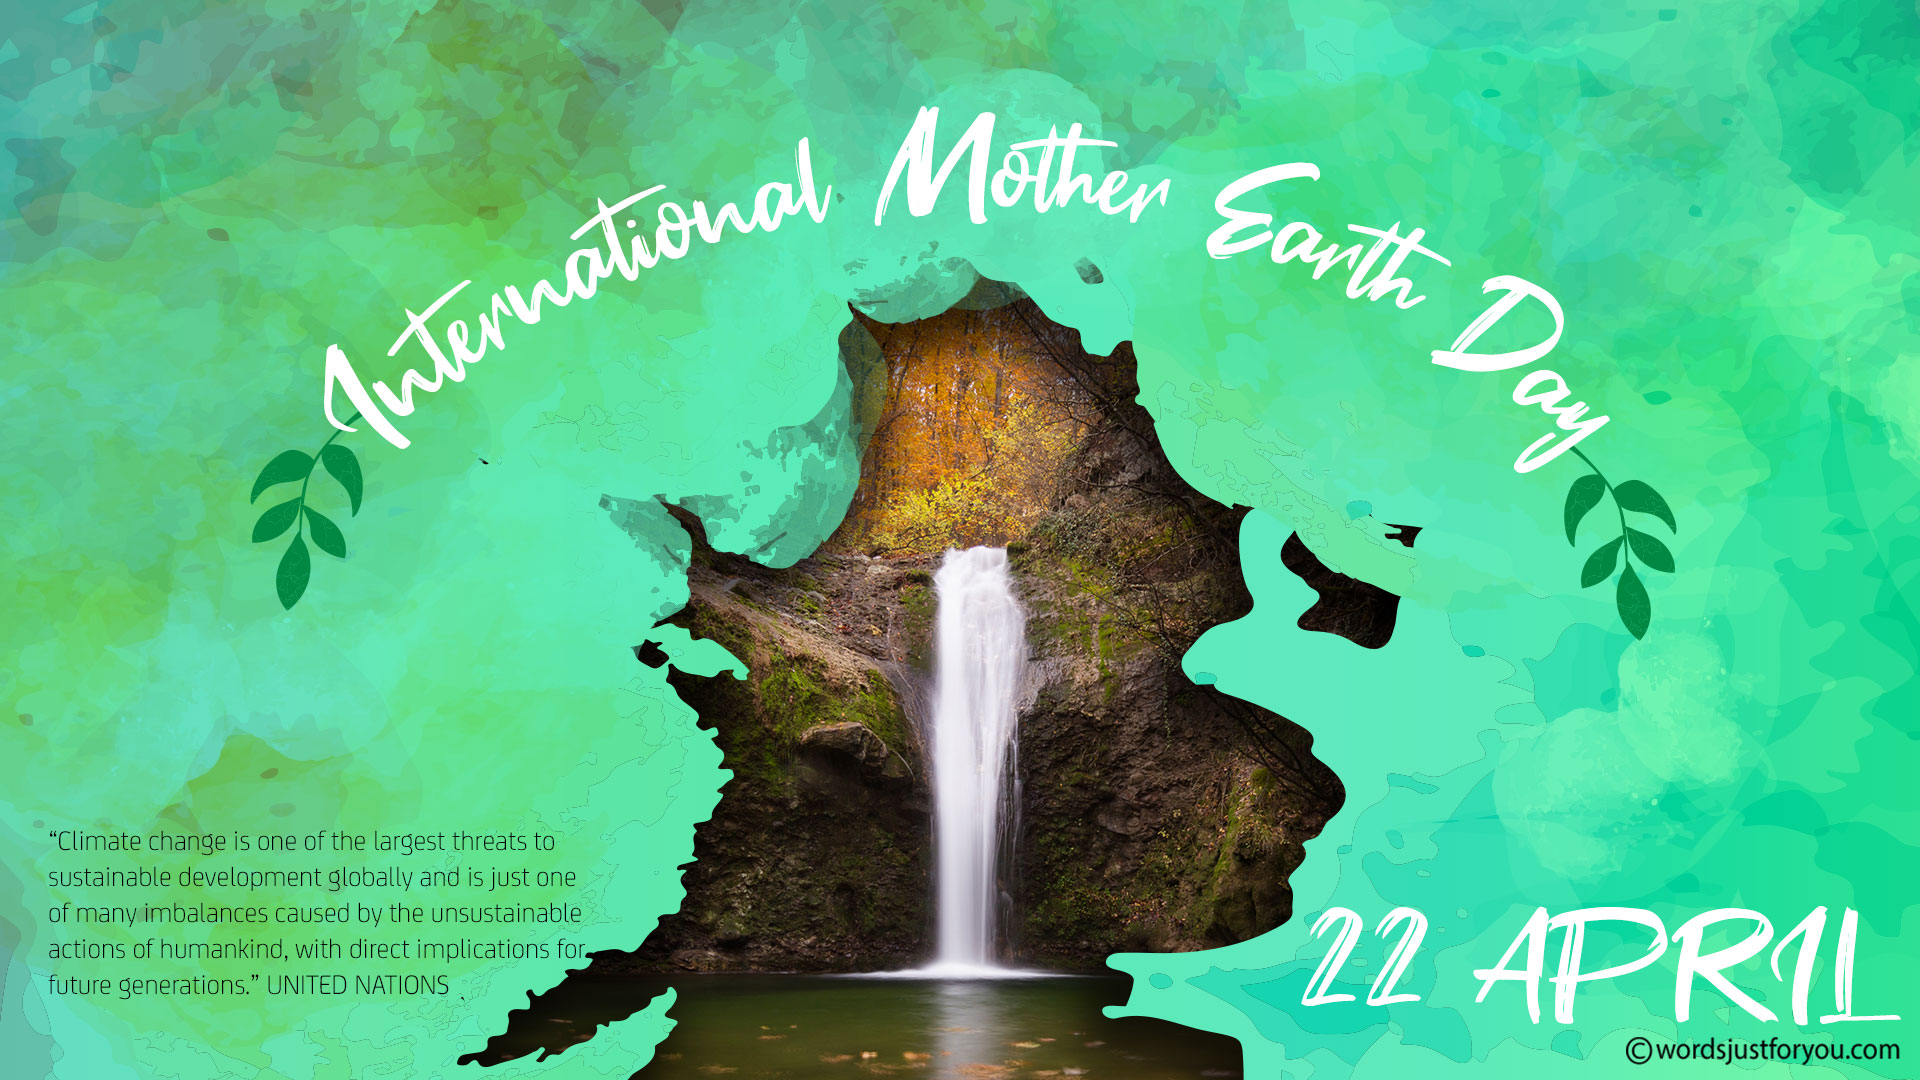 Happy Mother Earth Day - 22 April 1